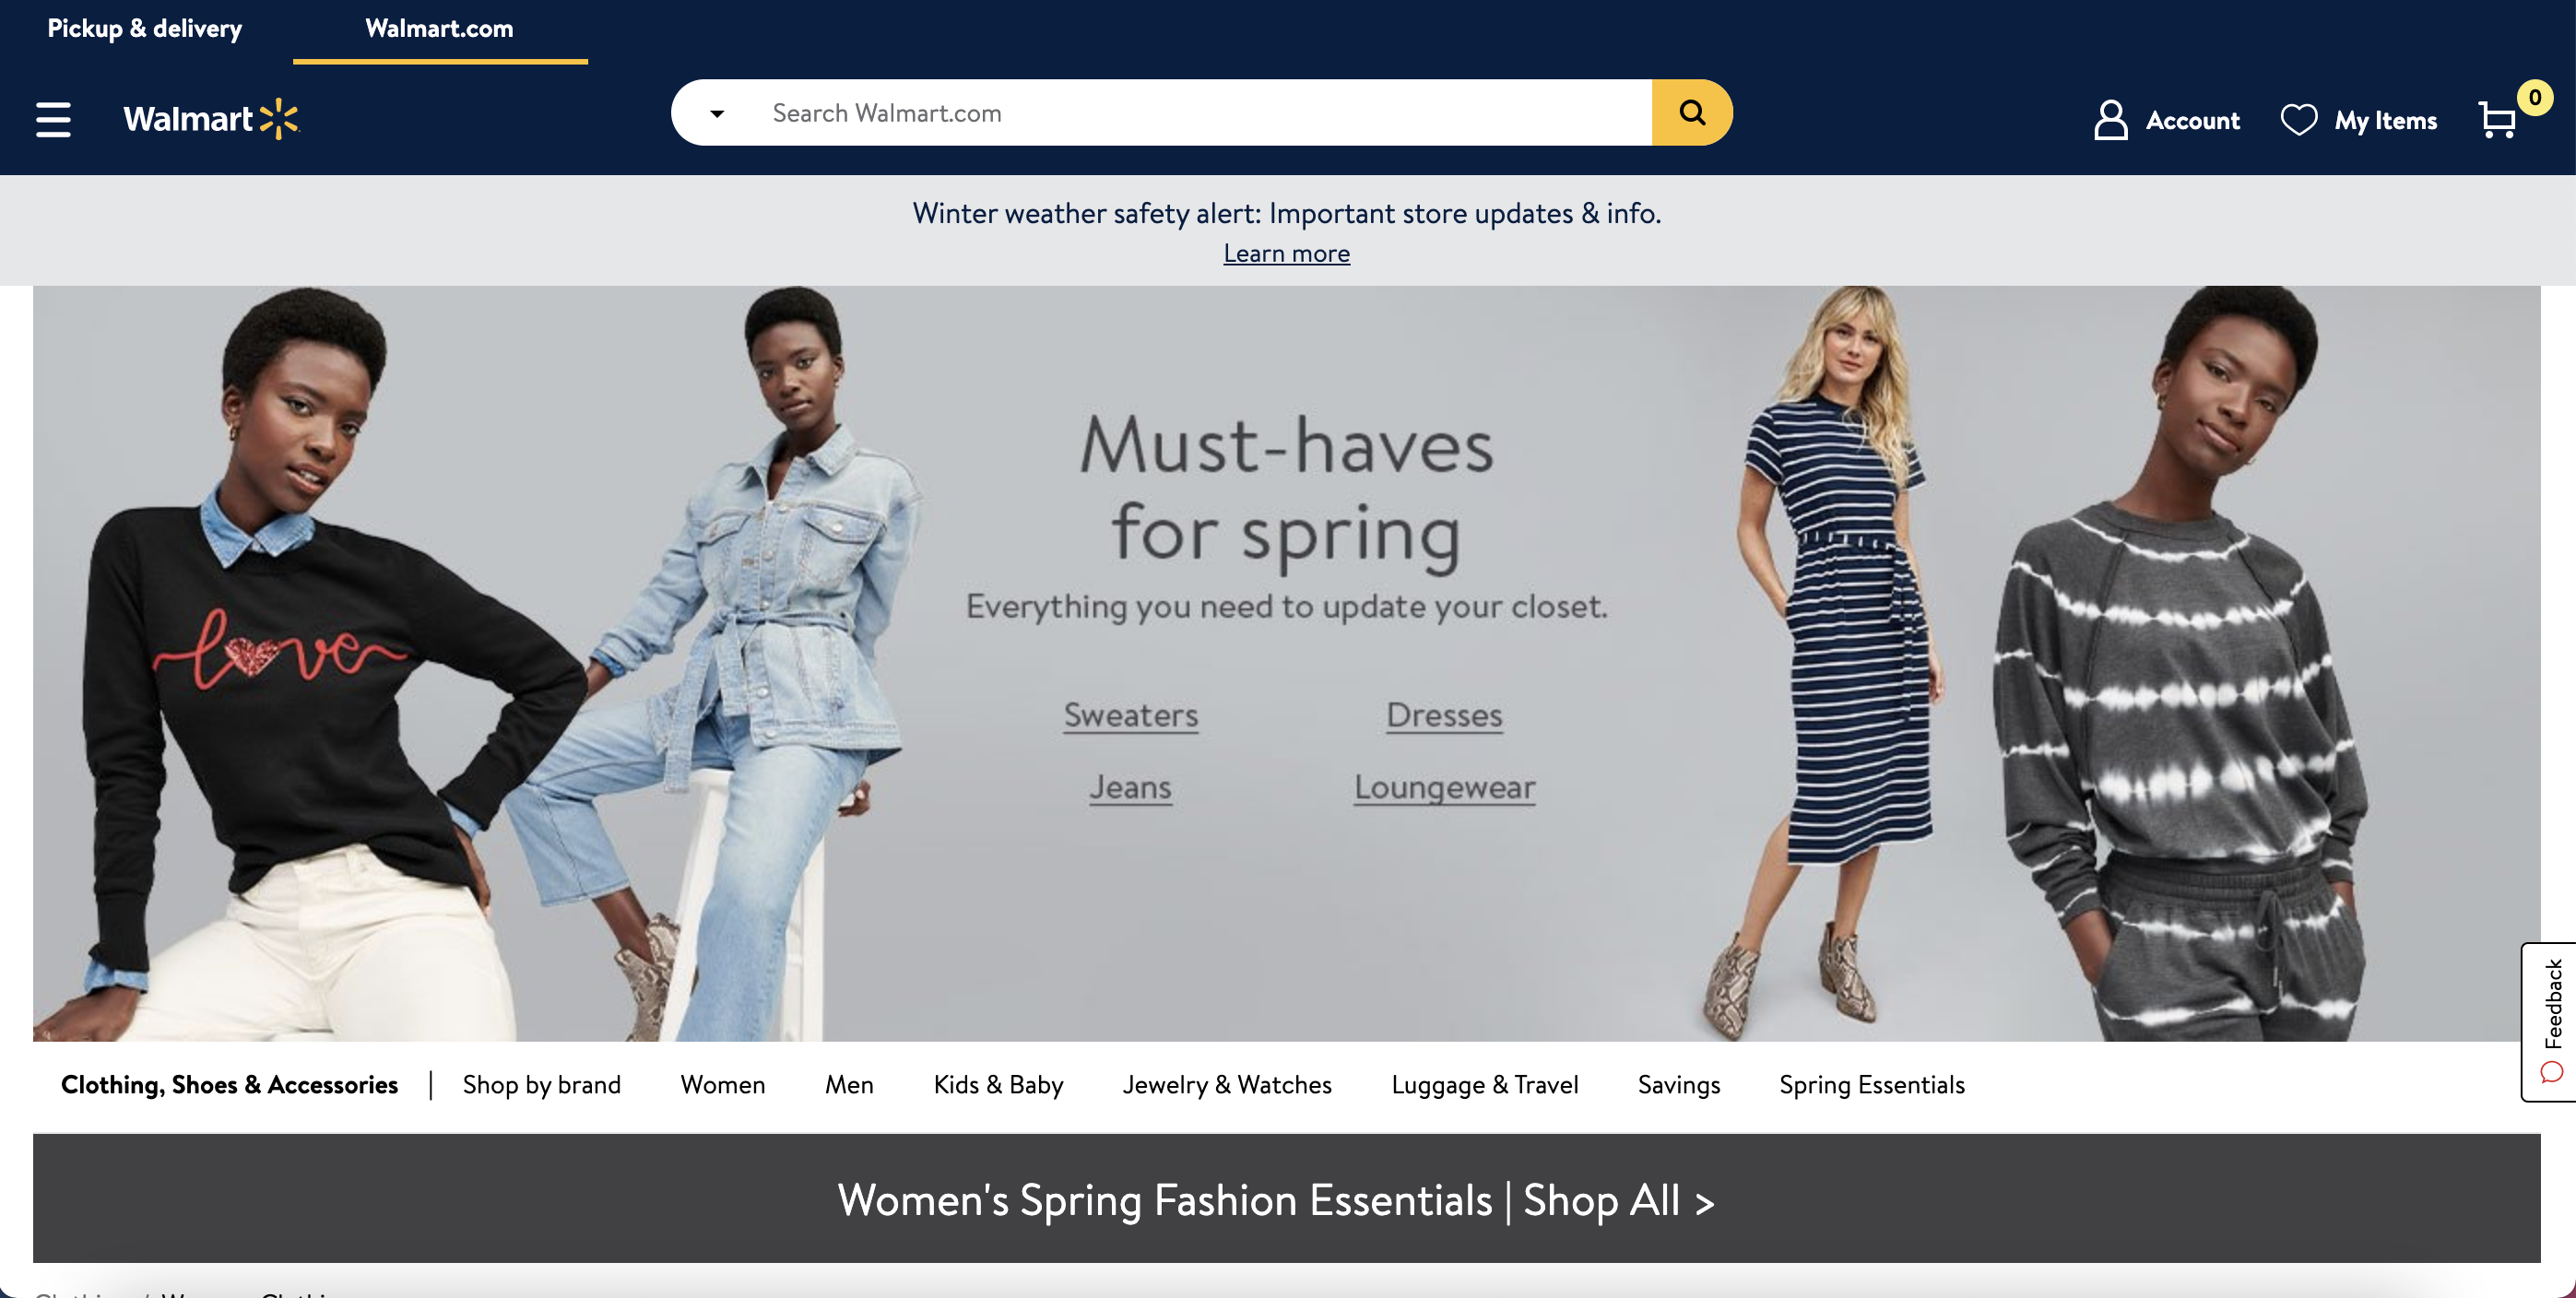 Guide to Walmart listings: Walmart Marketplace is shifting to selling more clothing